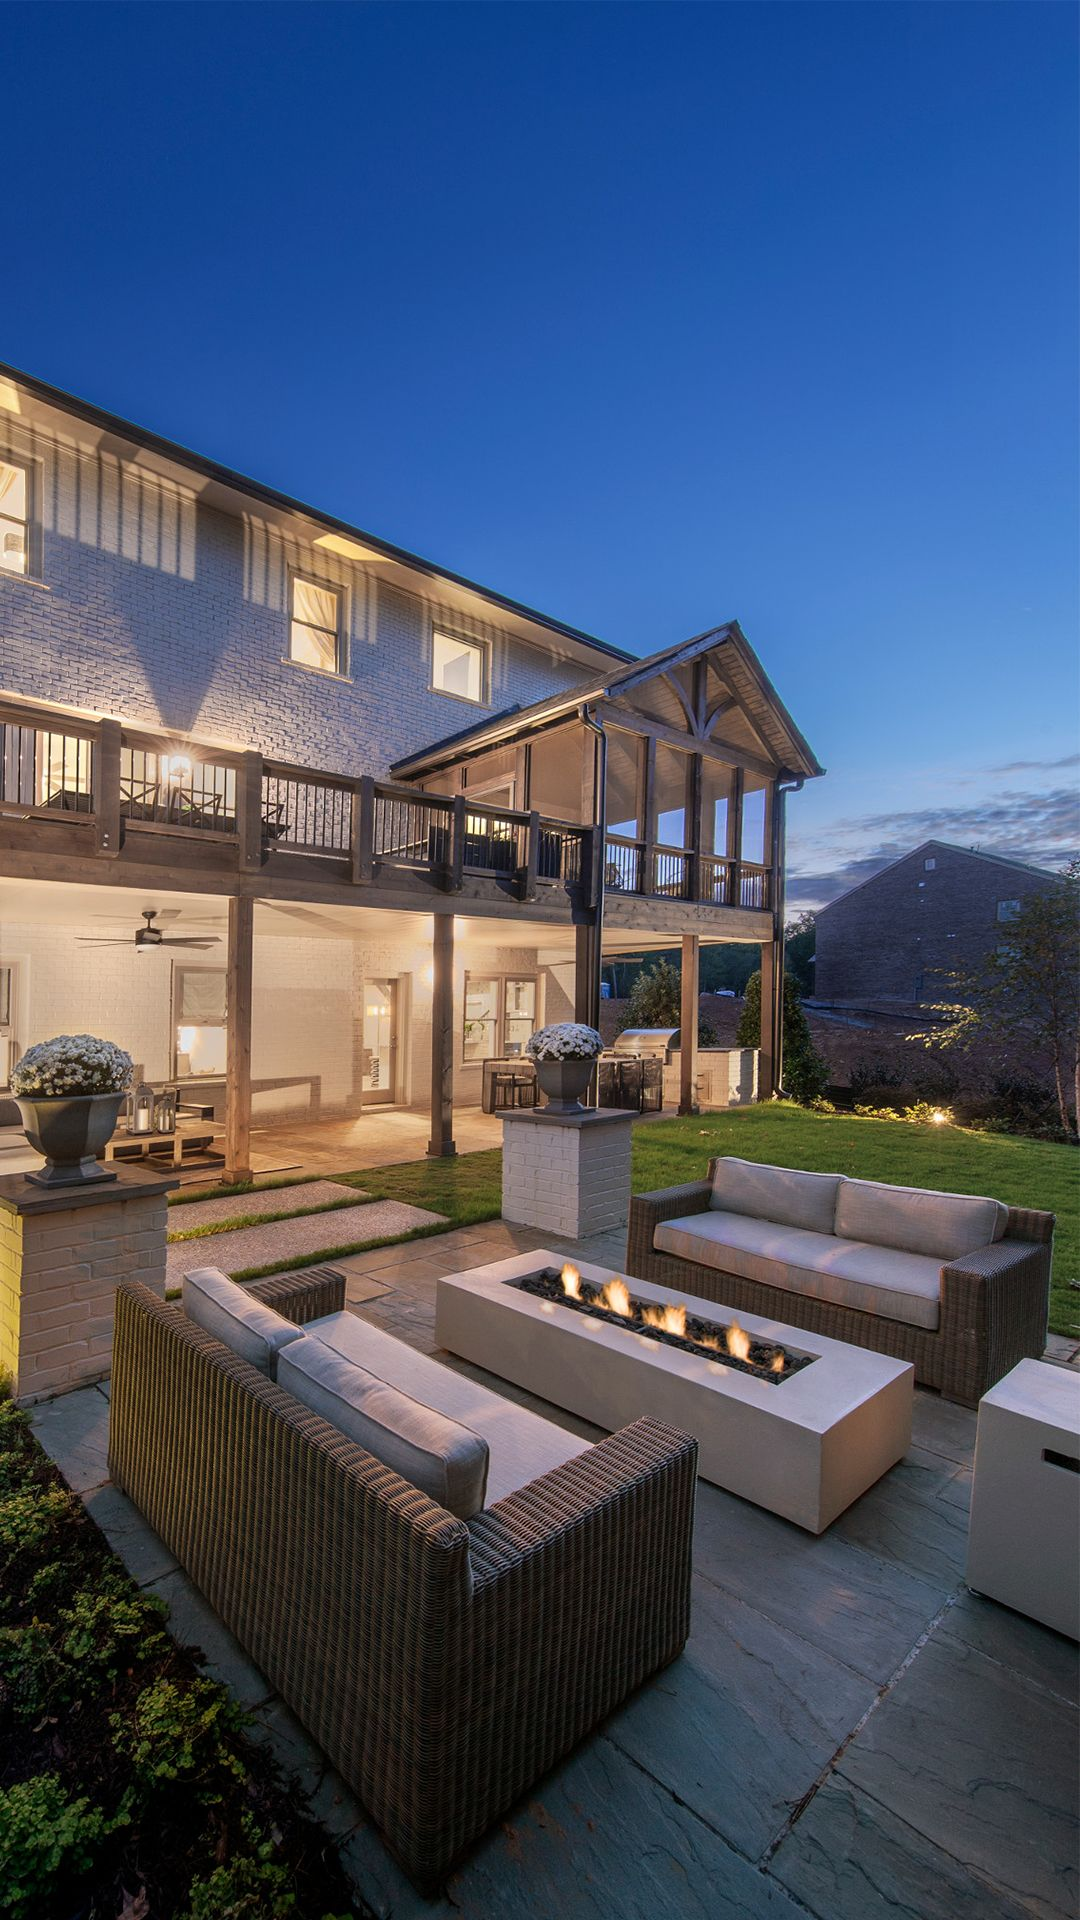 New Homes for Sale in Atlanta, GA by   Outdoor living ... on Outdoor Living Sale id=93259